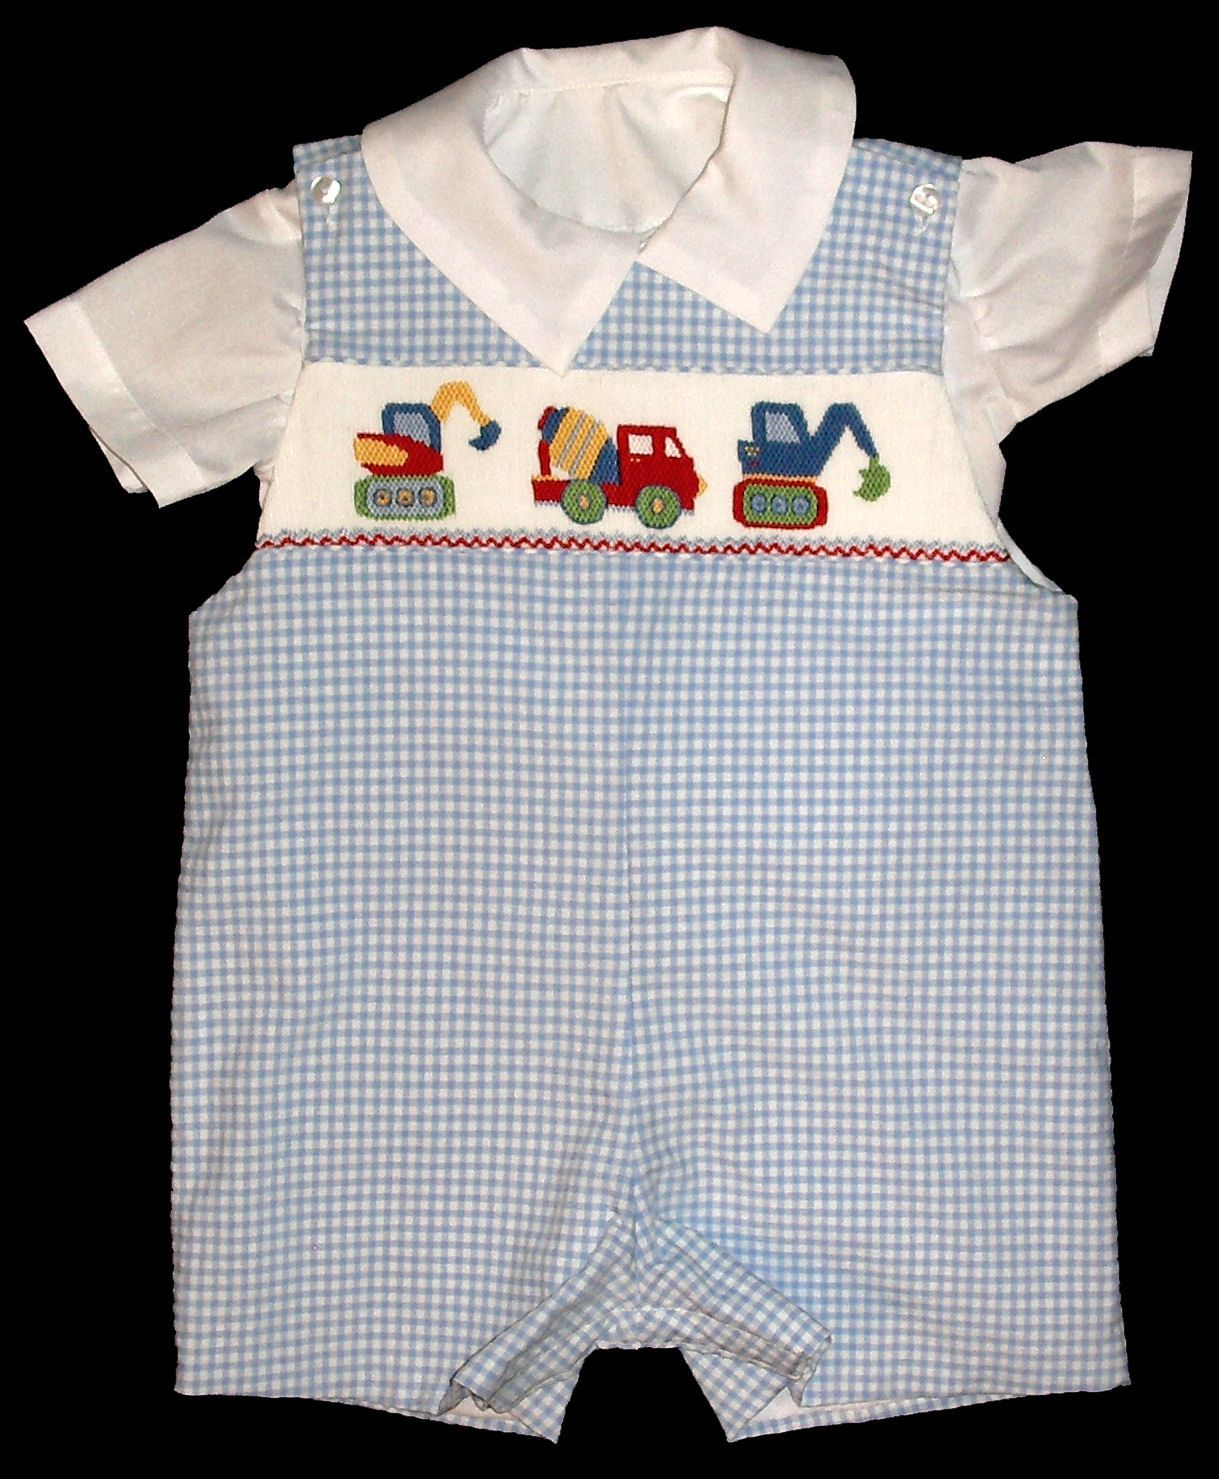 Three_Construction_Trucks Boys Shortall - Romper - Shirt - Set